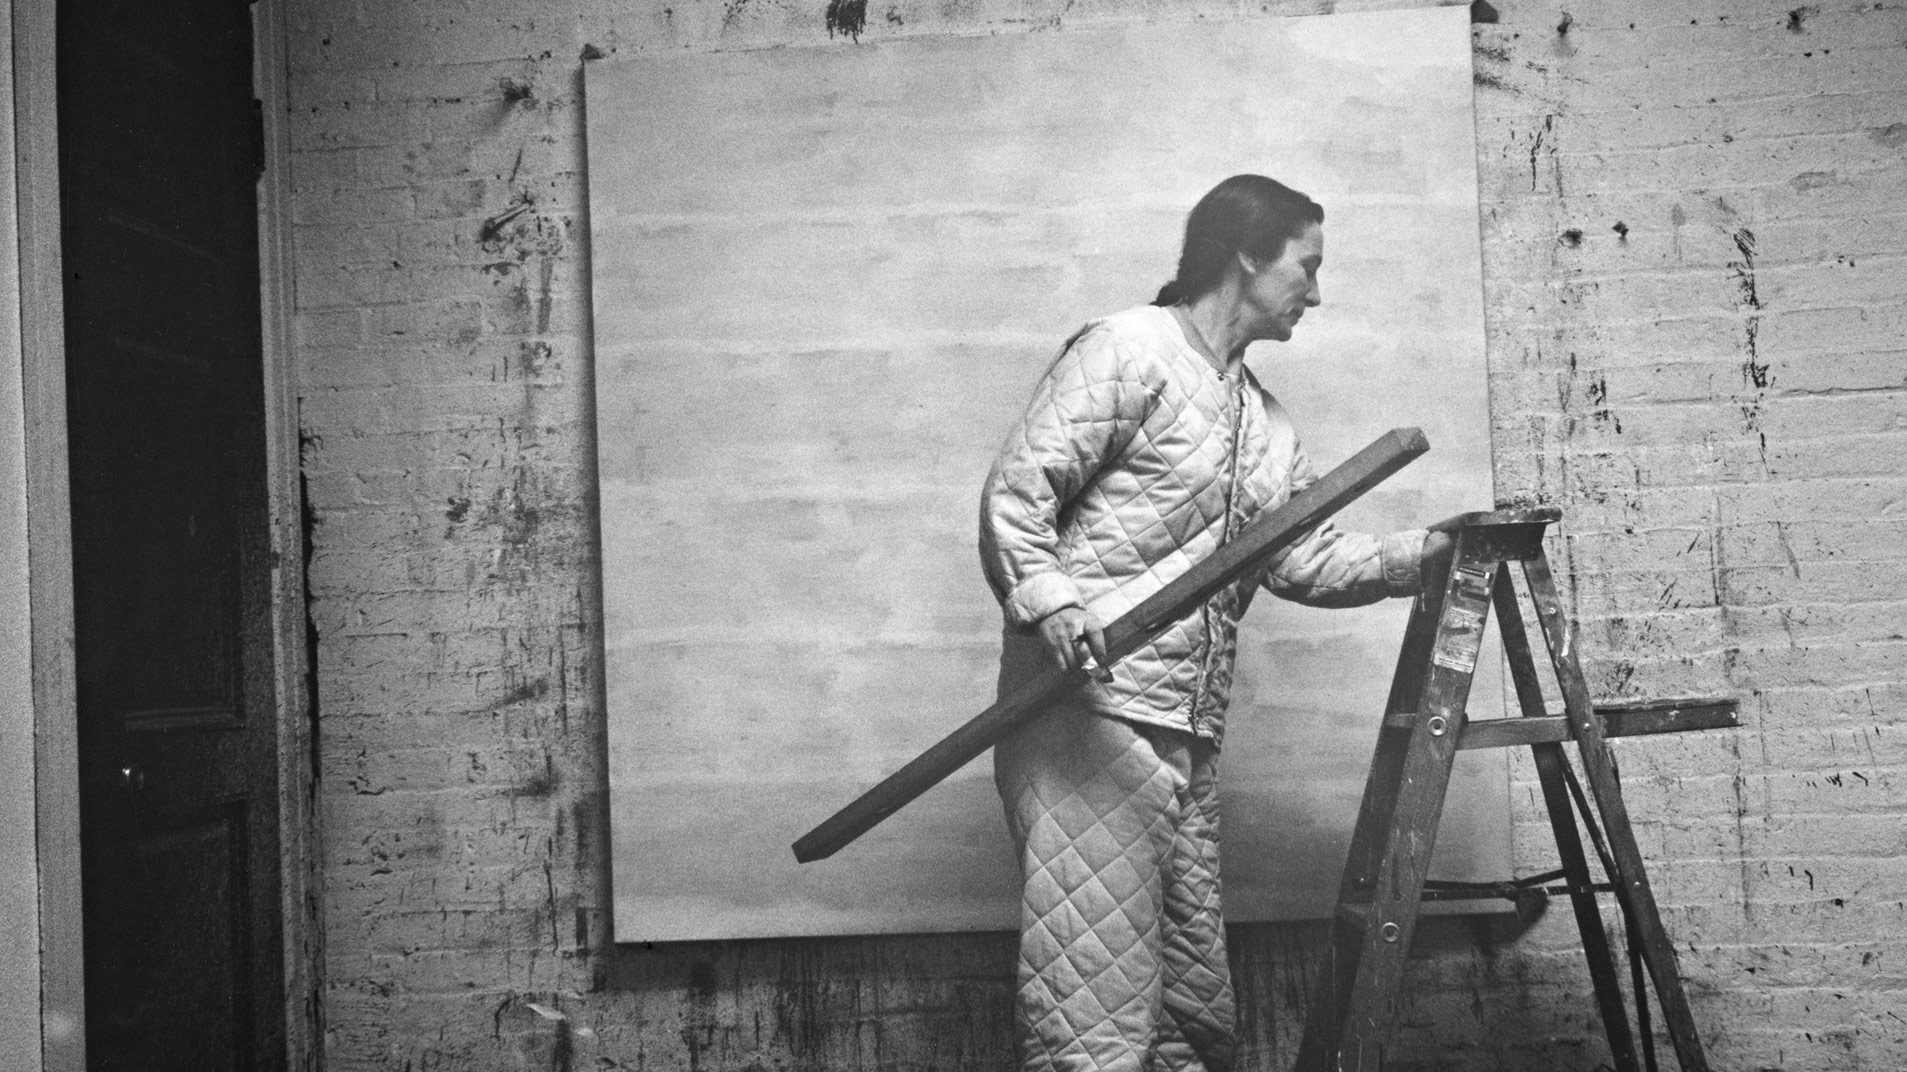 Agnes Martin at Work: https://i0.wp.com/www.guggenheim.org/wp-content/uploads/2016/10/gen-video-agnes-martin-video-still.jpg